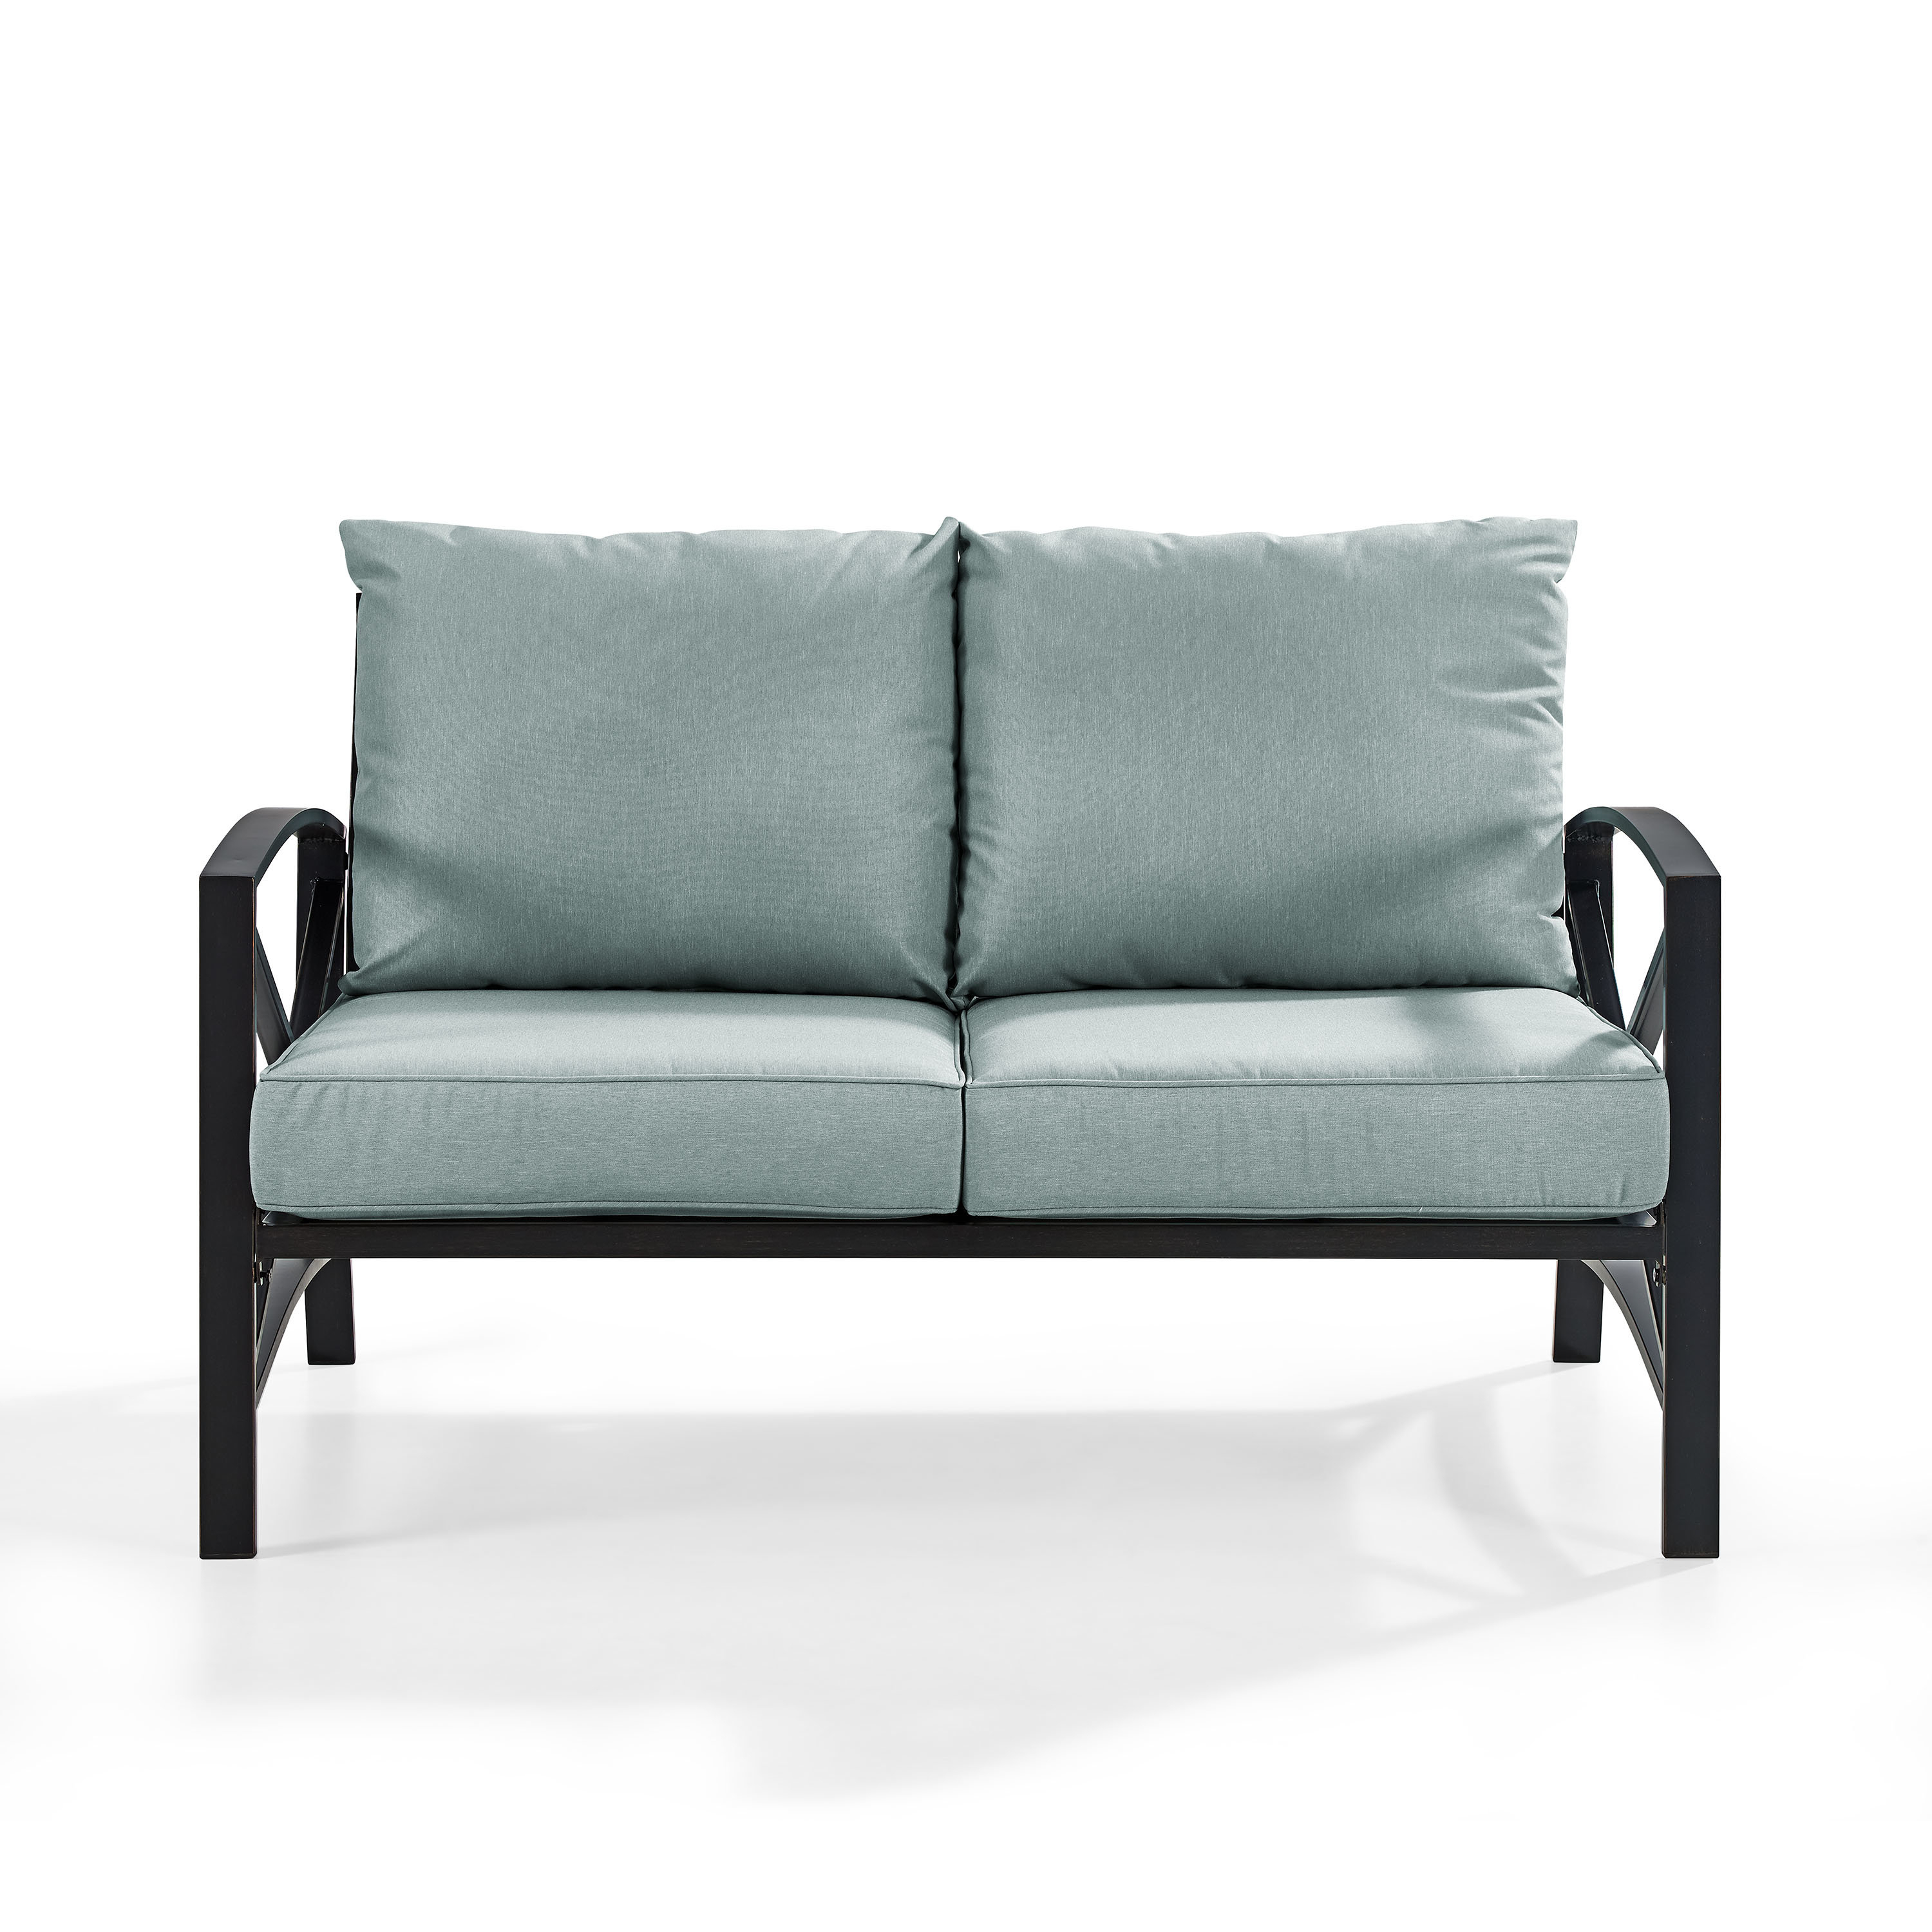 Allmodern Pertaining To Newest Sylvania Outdoor Loveseats (View 4 of 20)